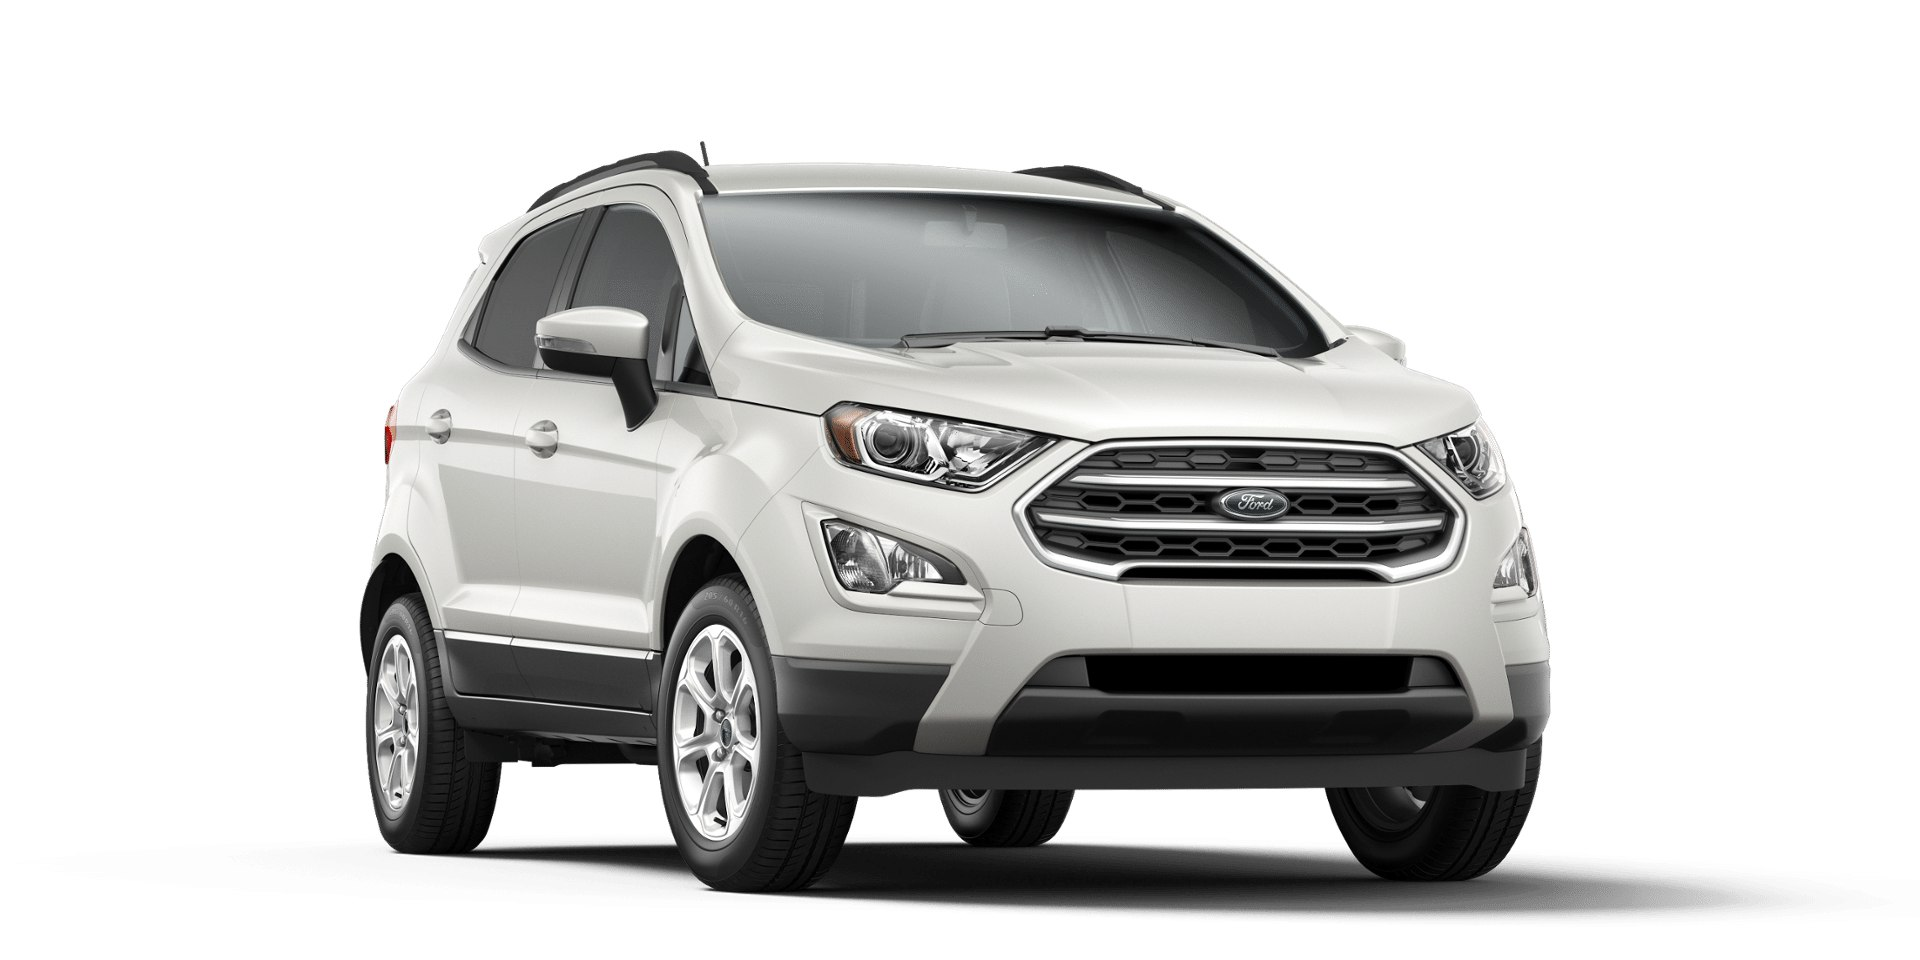 2018 Ford Ecosport Color Options